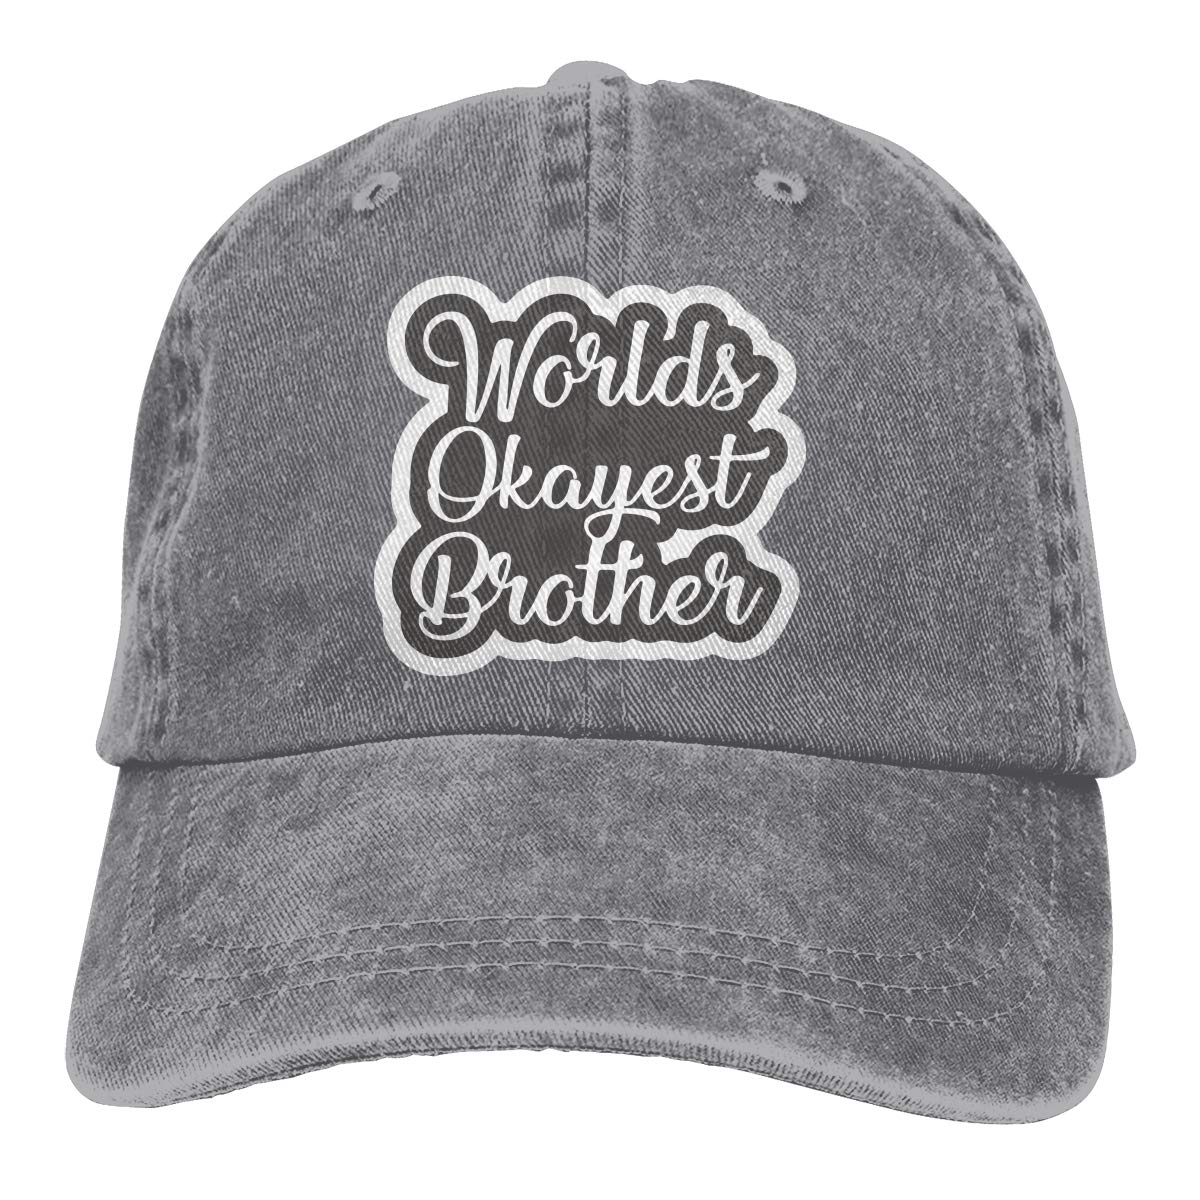 Worlds Okayest Brother Adult Personalize Cowboy Outdoor Sports Hat Adjustable Baseball Cap